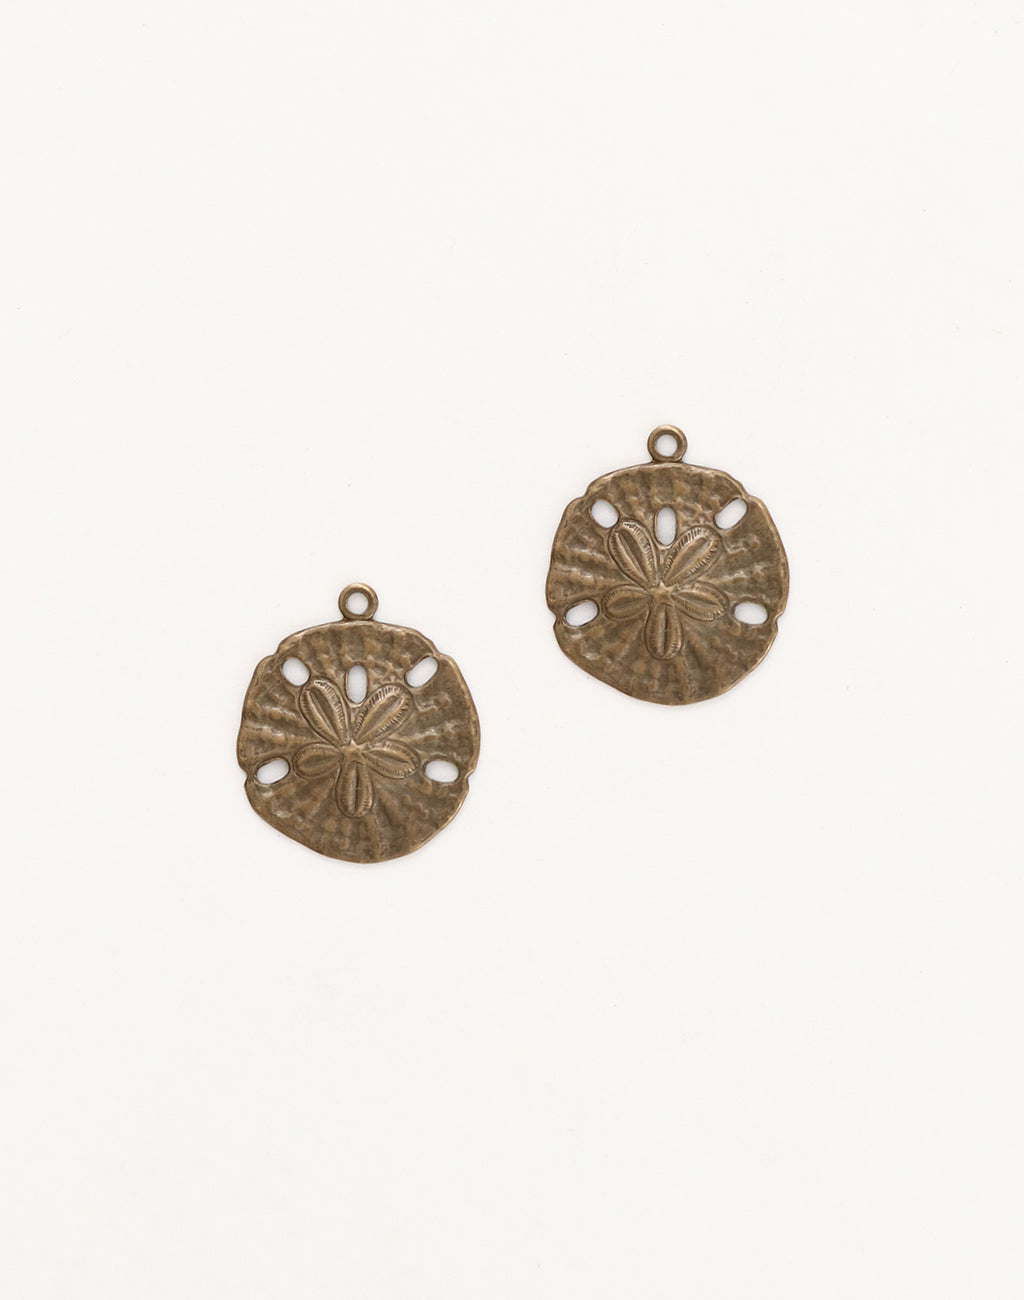 Sand Dollar, 18x16mm, (2pcs)